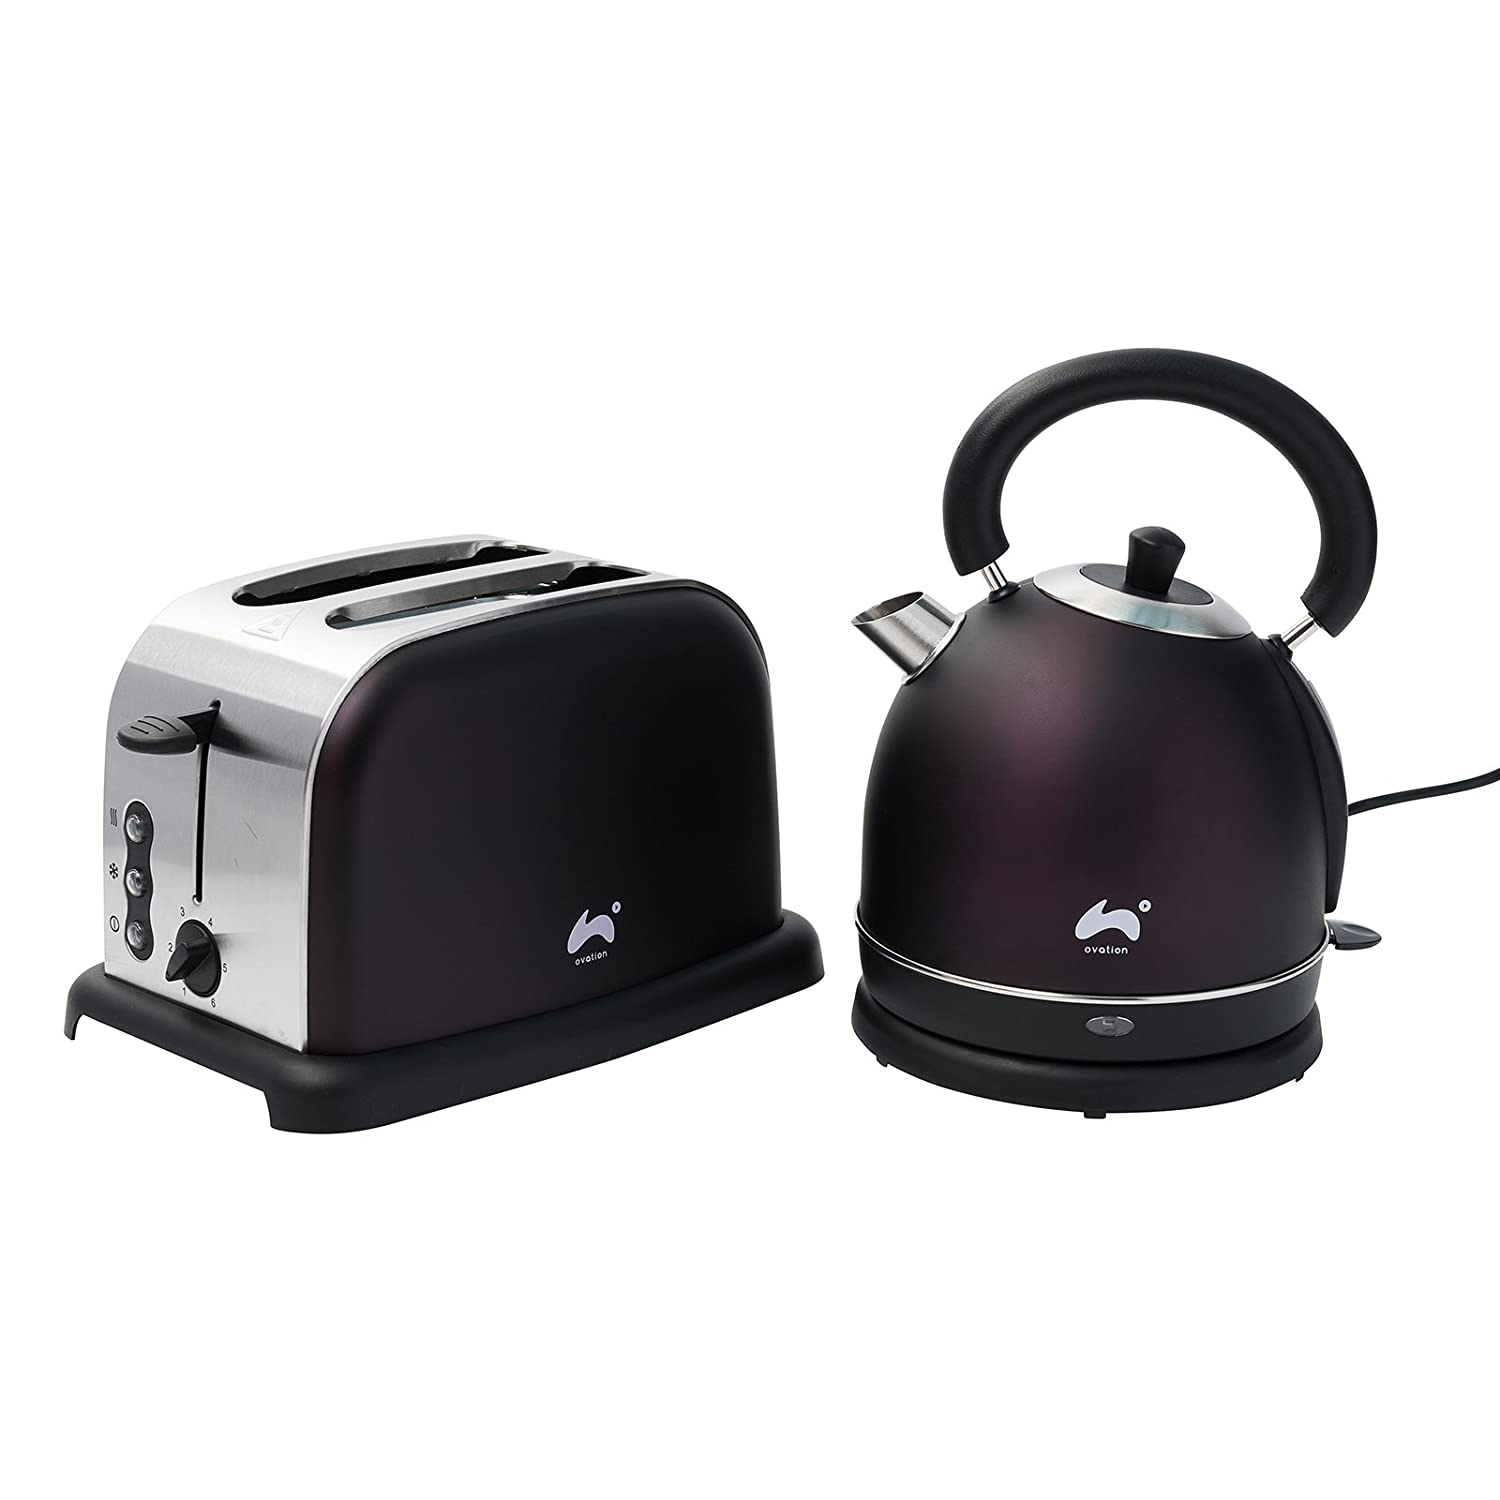 5l accents range only electricals co uk small kitchen appliances - Ovation Plum Classic Breakfast Set 2200w Dome Kettle With 1 8l Capacity Strix Control